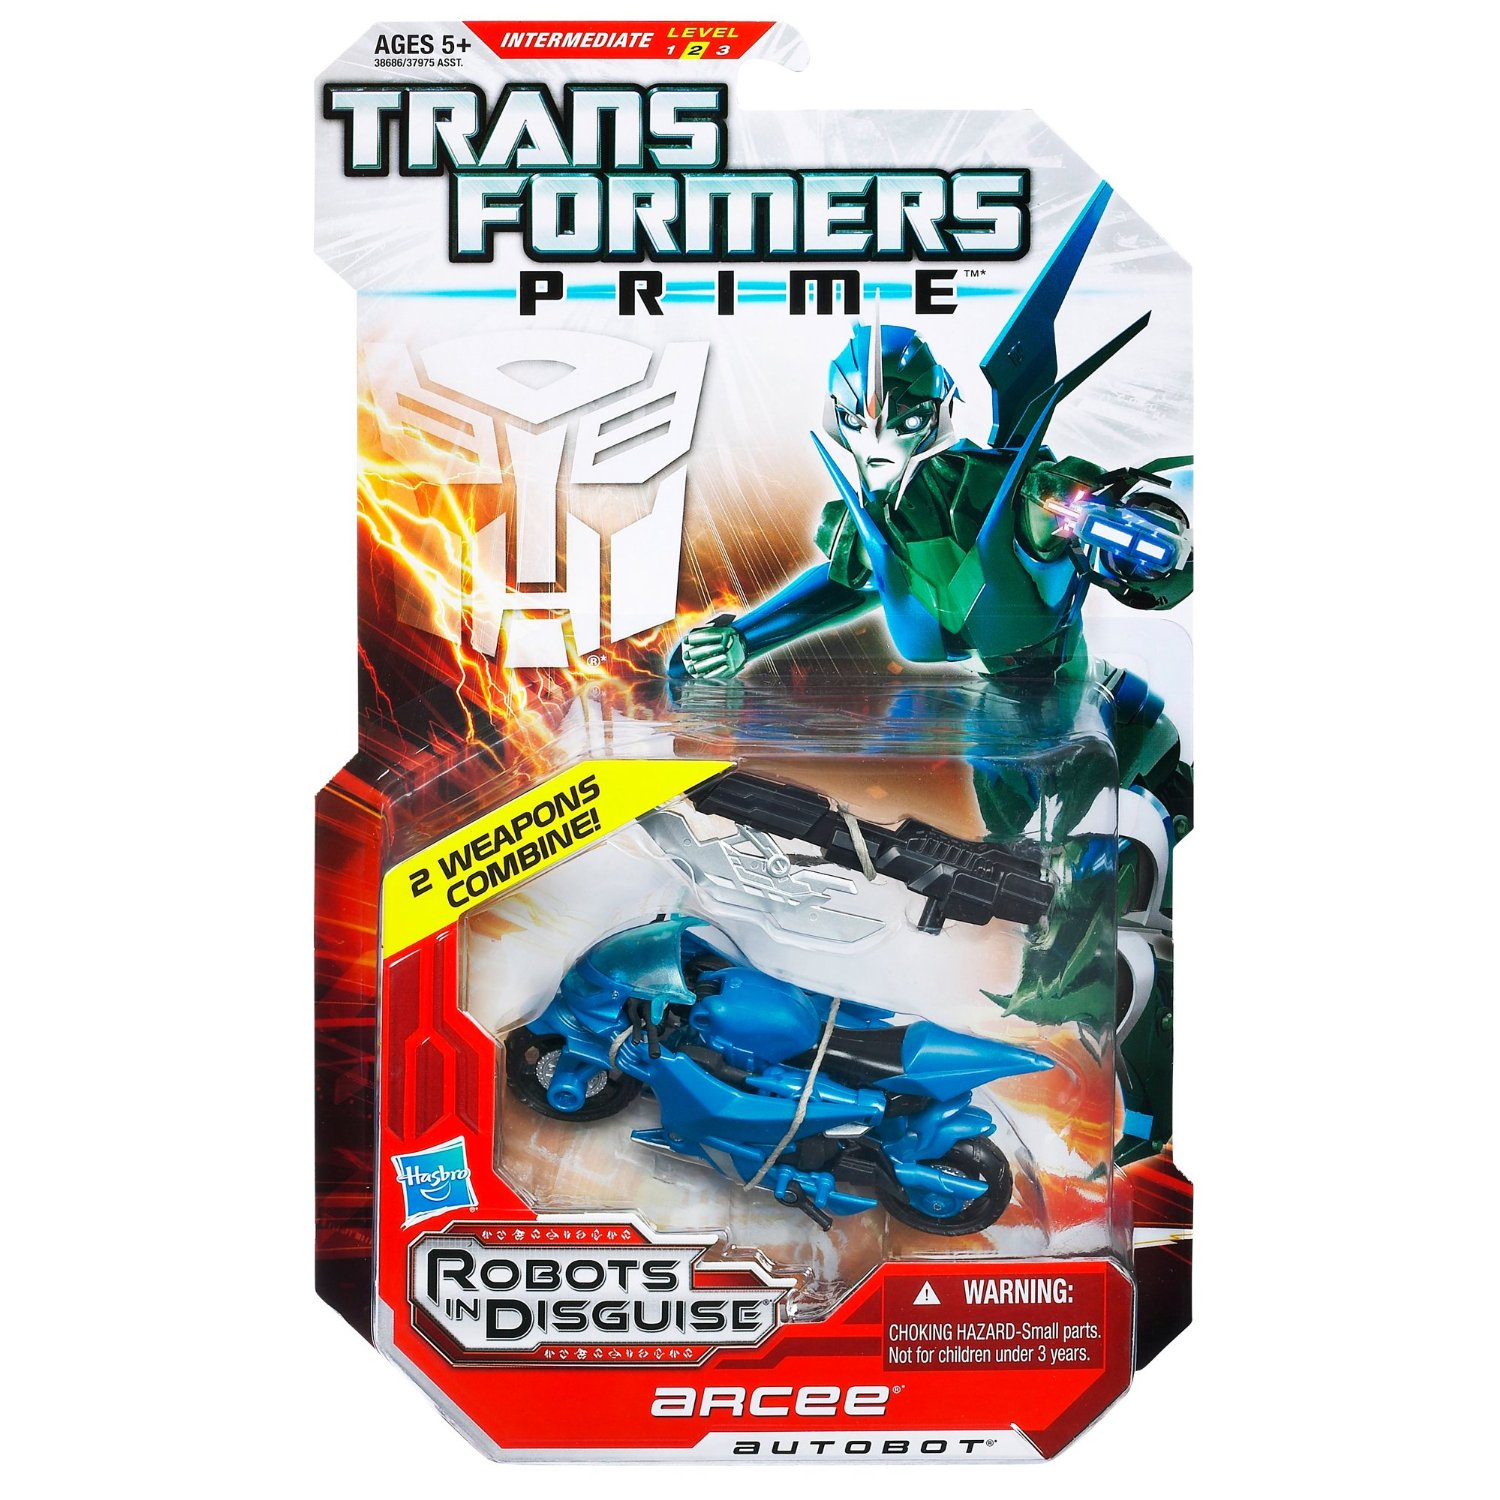 Transformers Prime Robots in Disguise Deluxe Class Autobot Arcee Figure